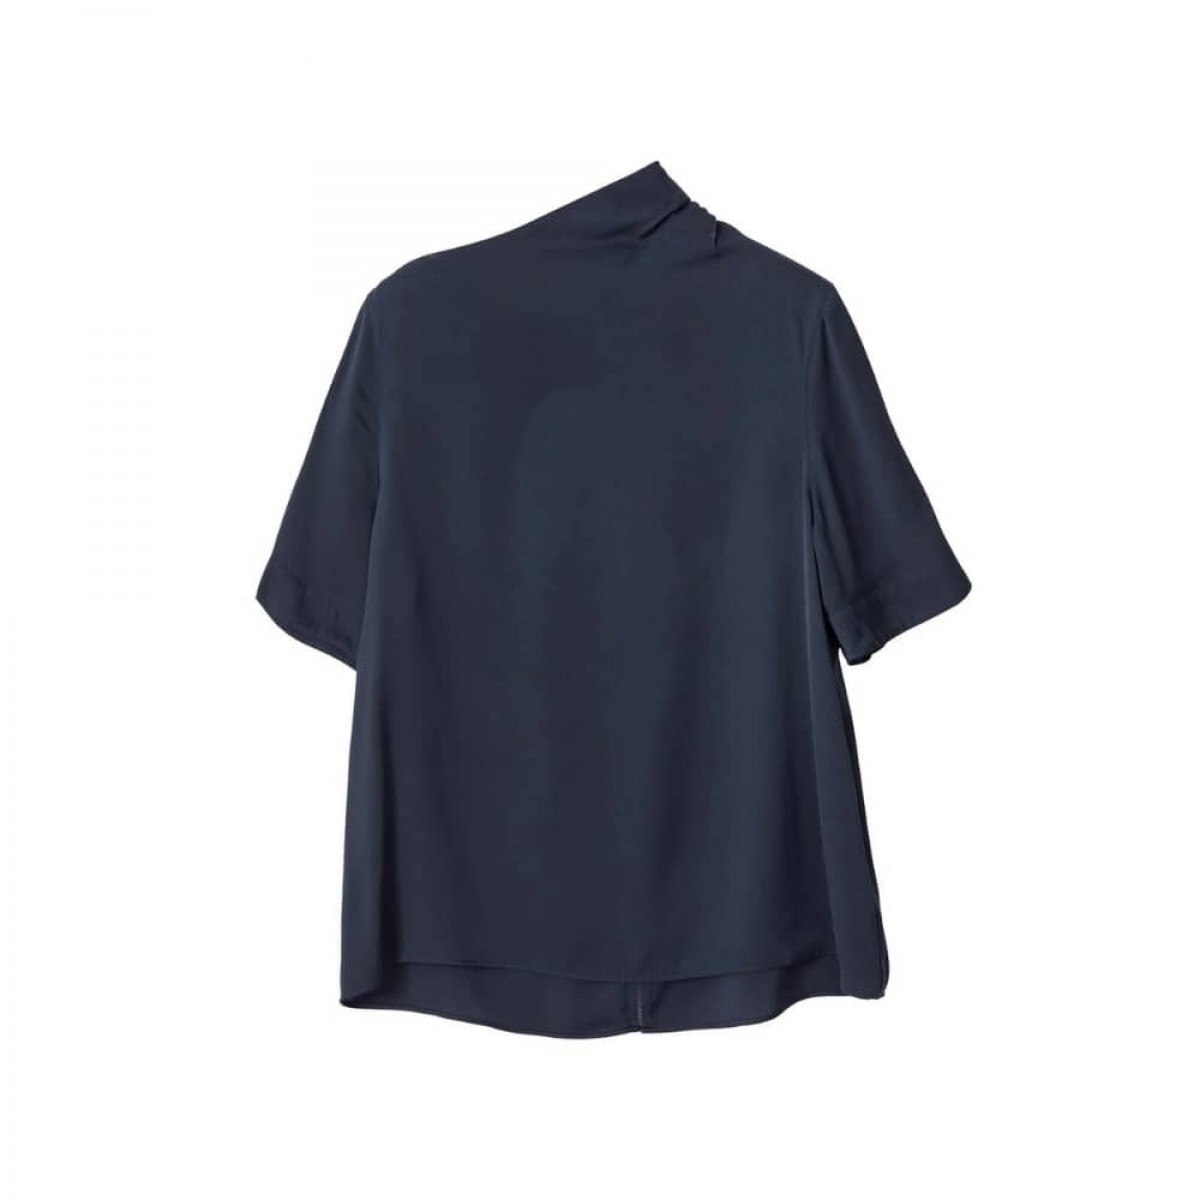 lima tee - blue grey - front